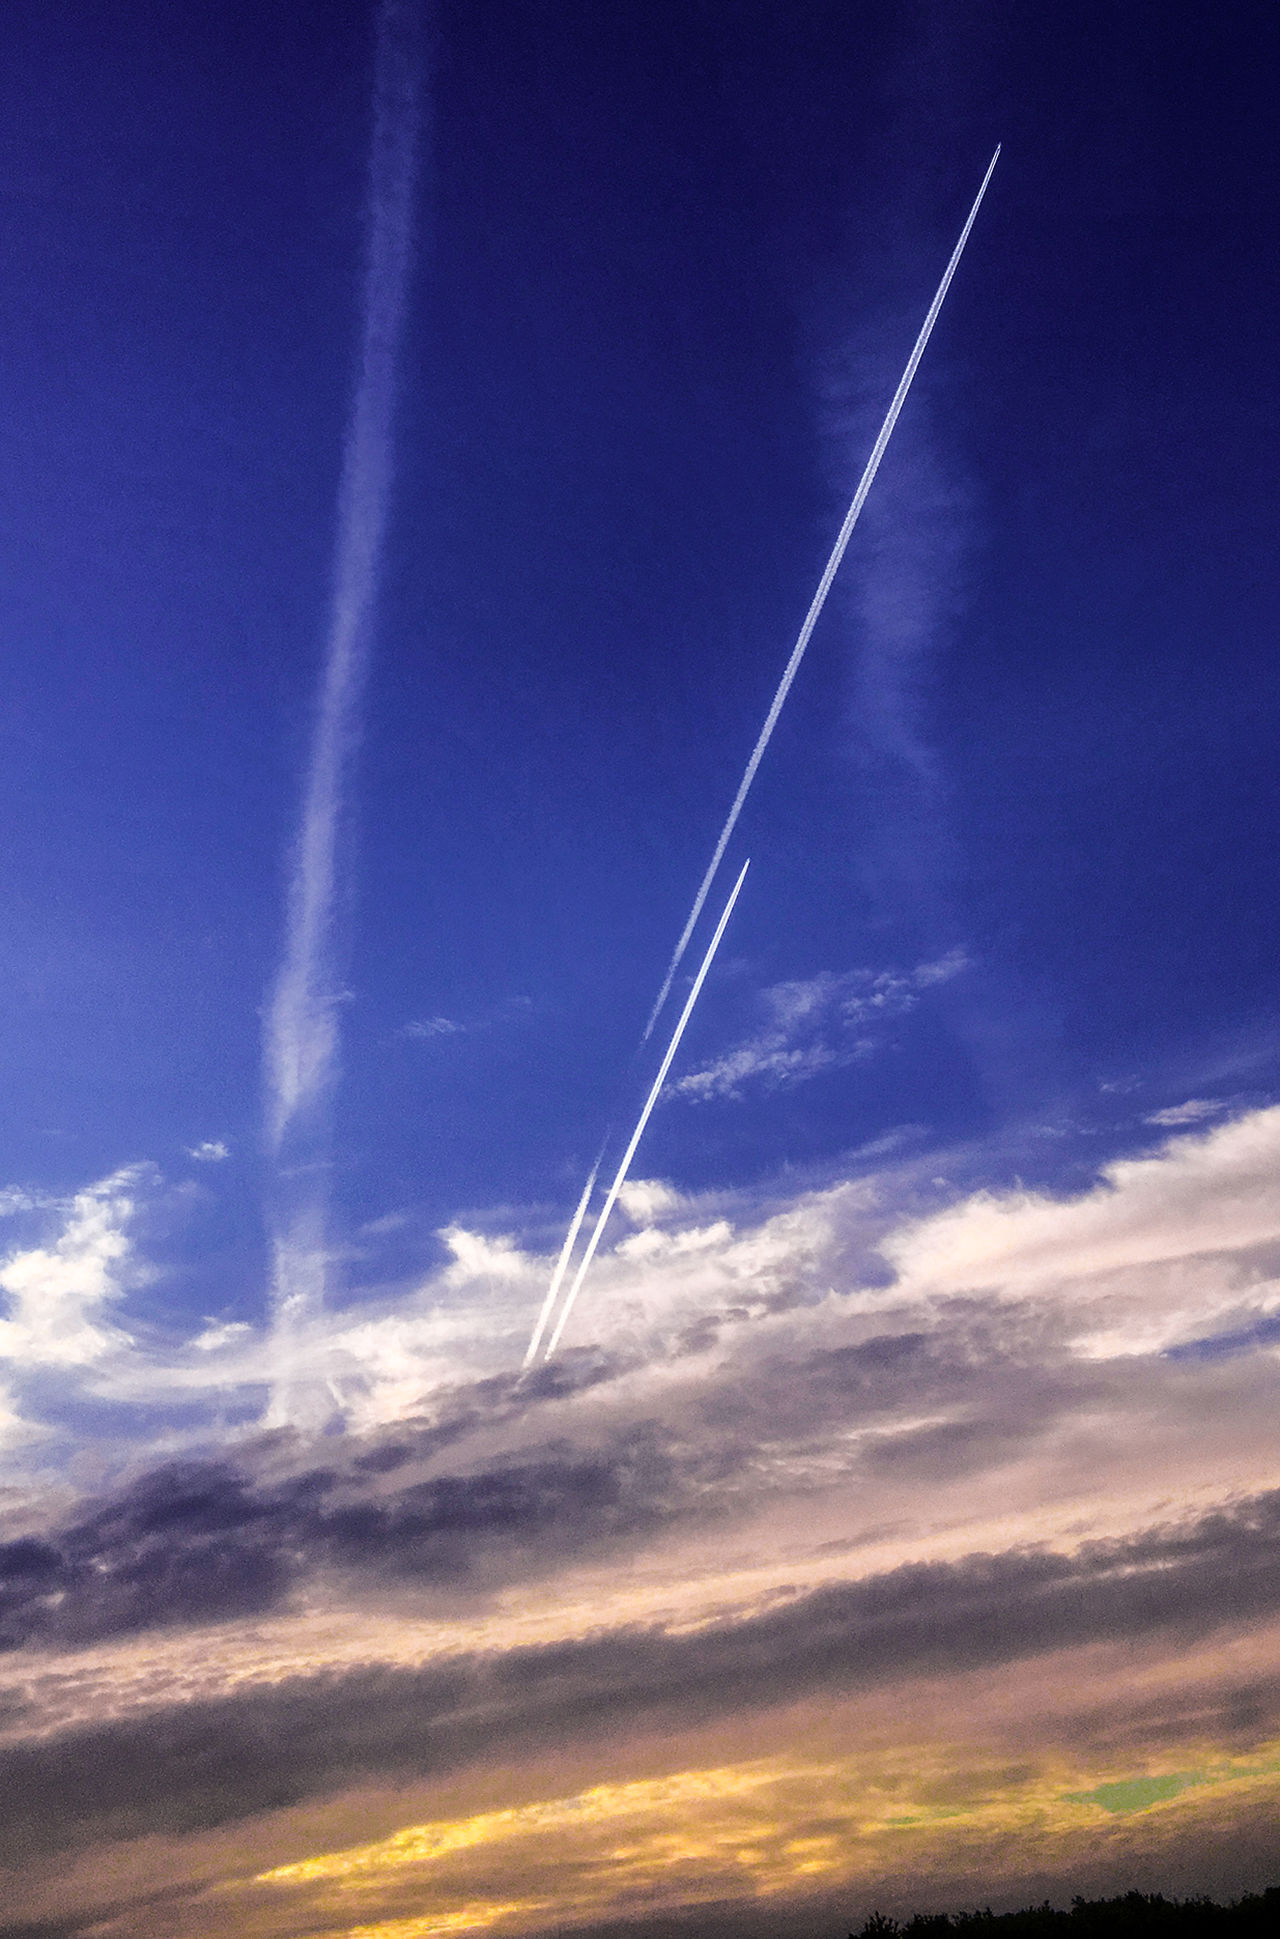 Flugzeuge am Morgenhimmel 7:00 Hout AM Beauty In Nature Blue Contrail Day Himmel Majestic Nature Naturephotography No People Outdoors Scenics Sky Streetphotography Sunset